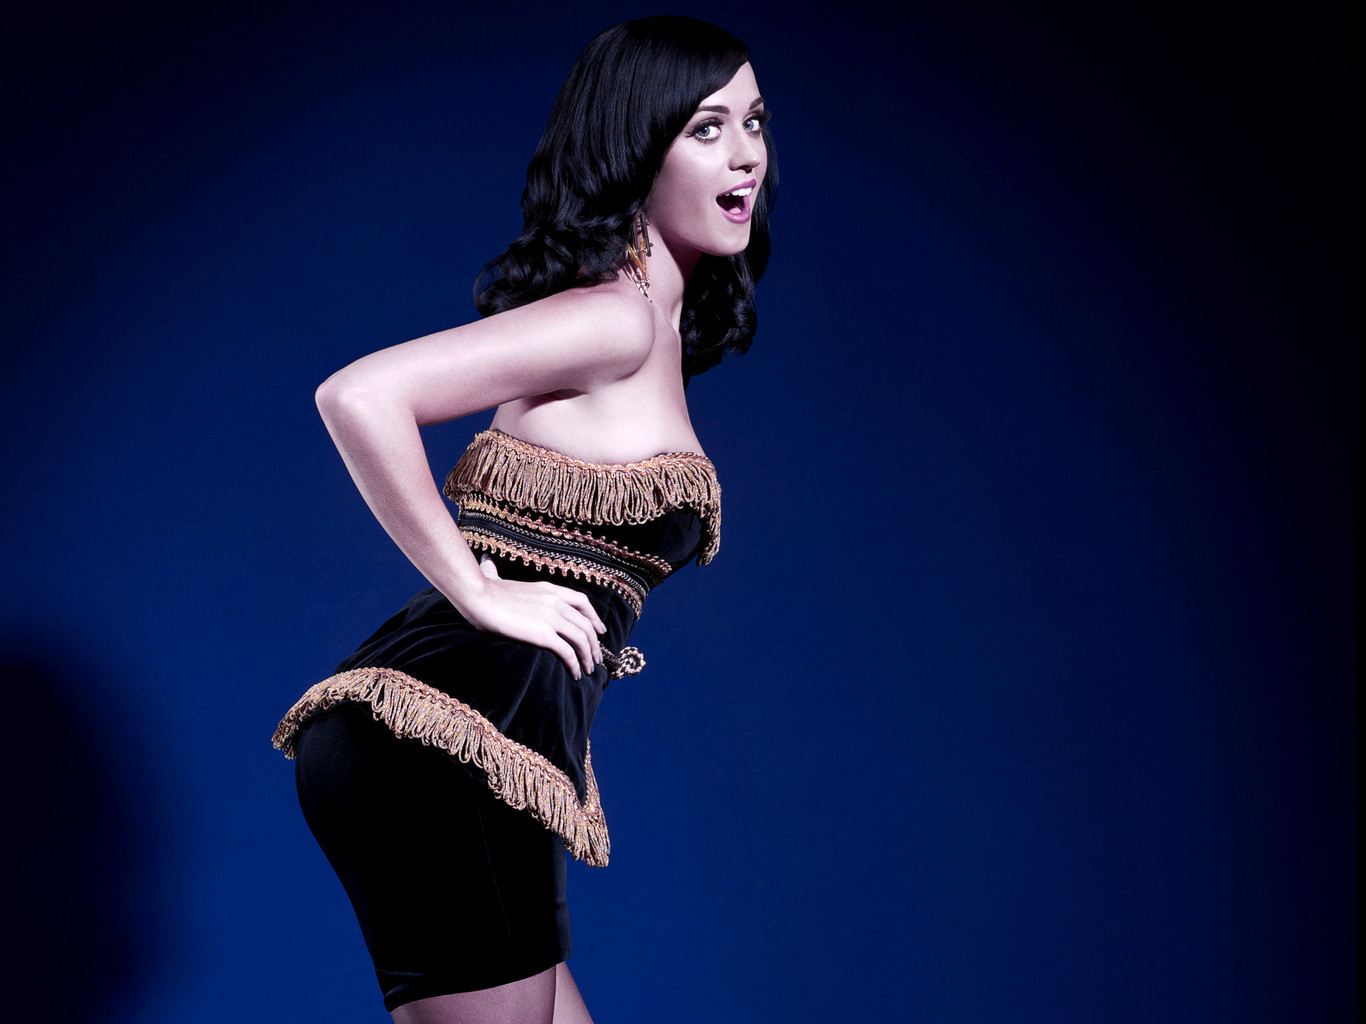 Katy perry sexy lingerie